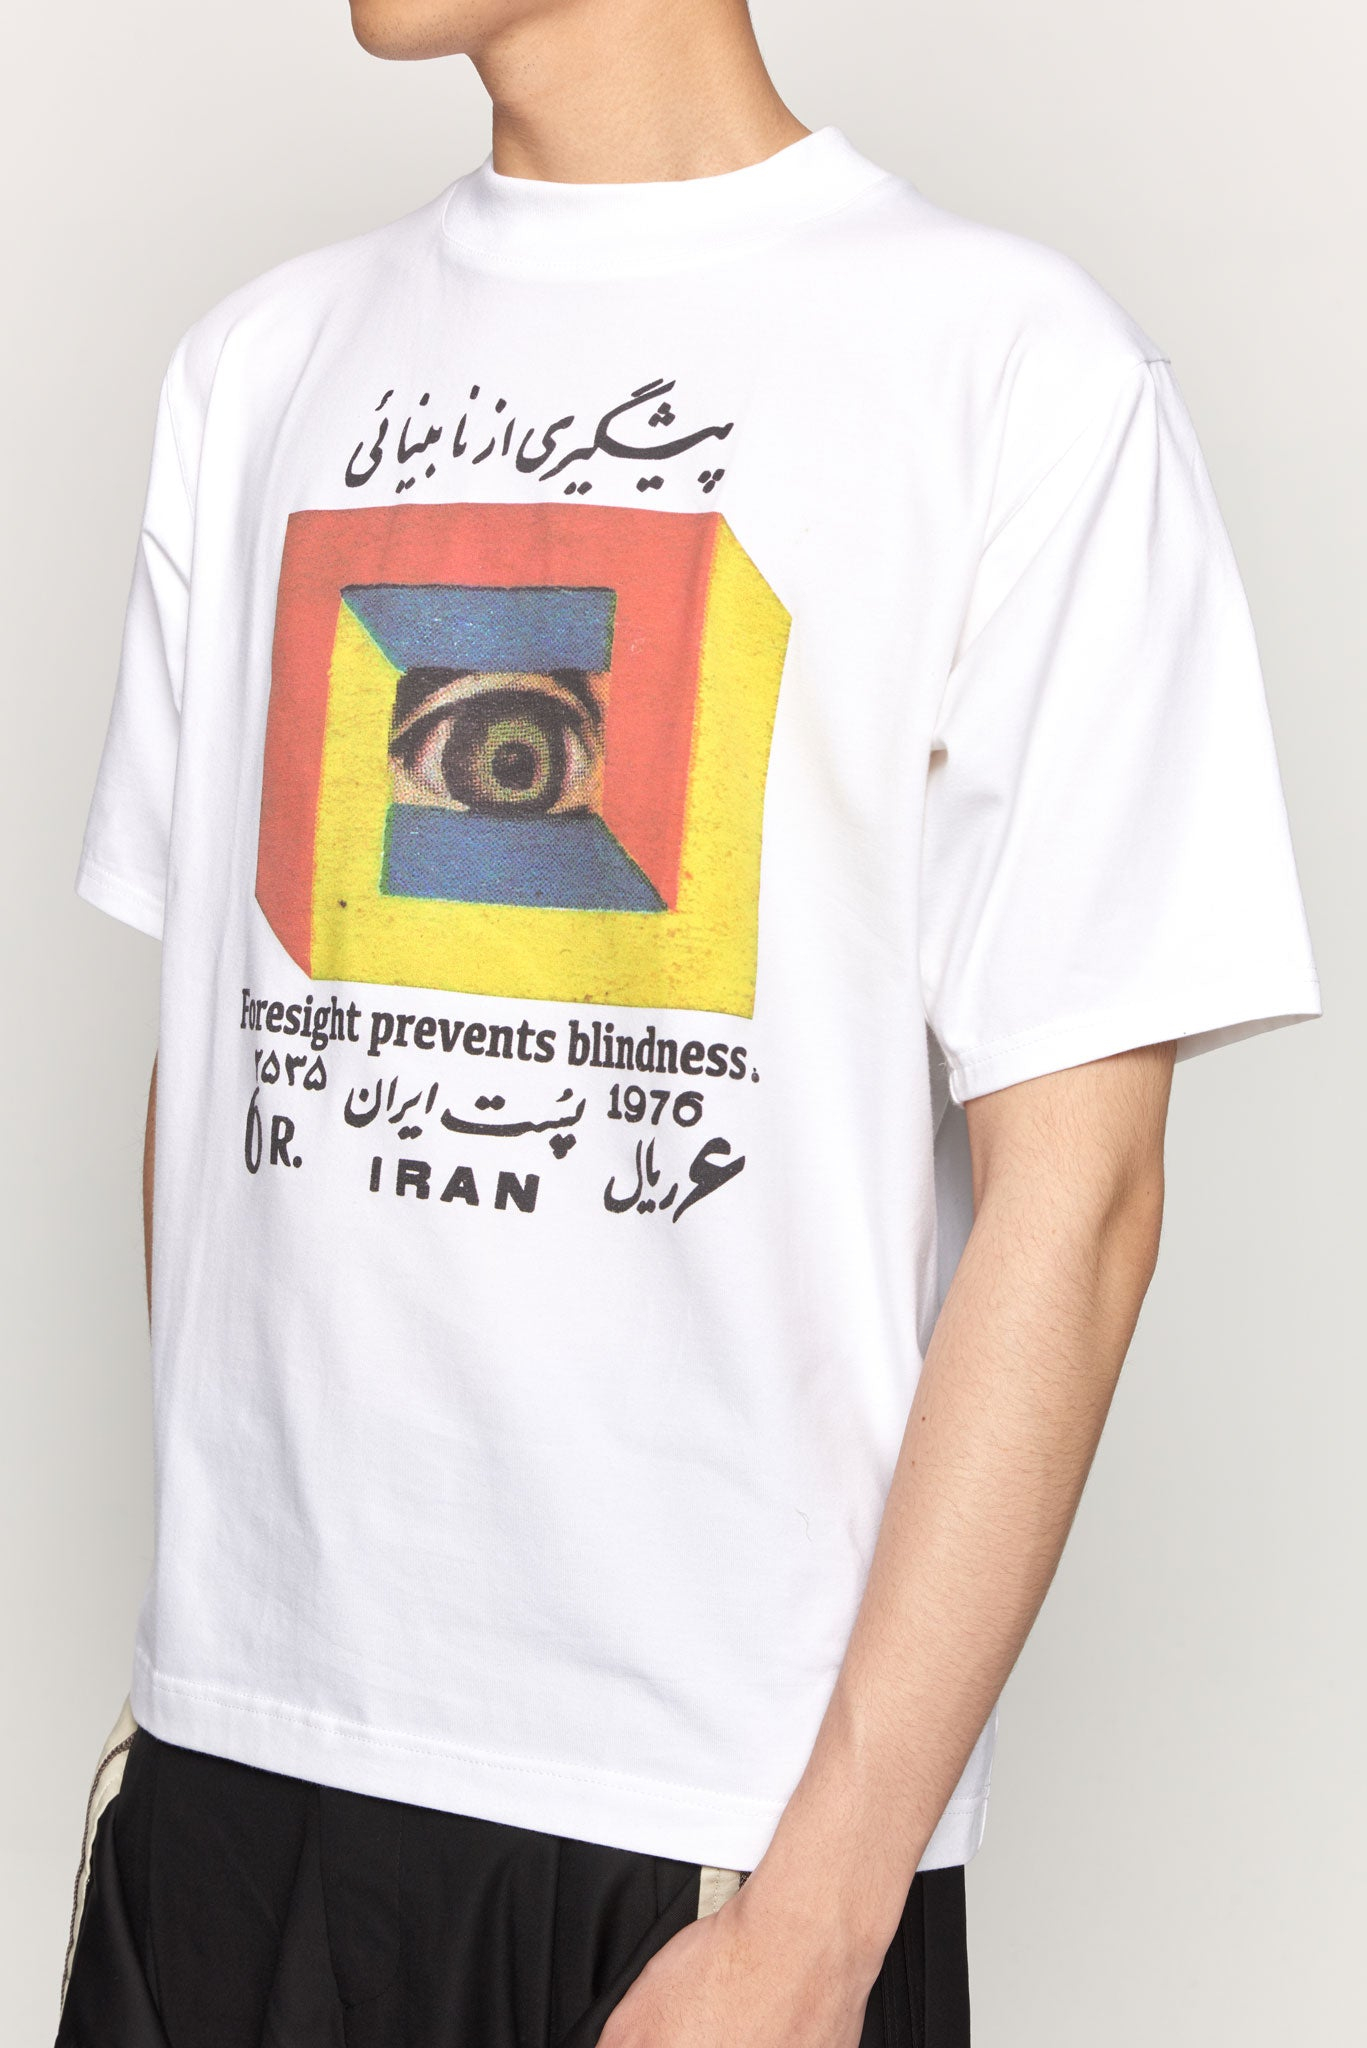 Foresight Prevents Blindness T-shirt